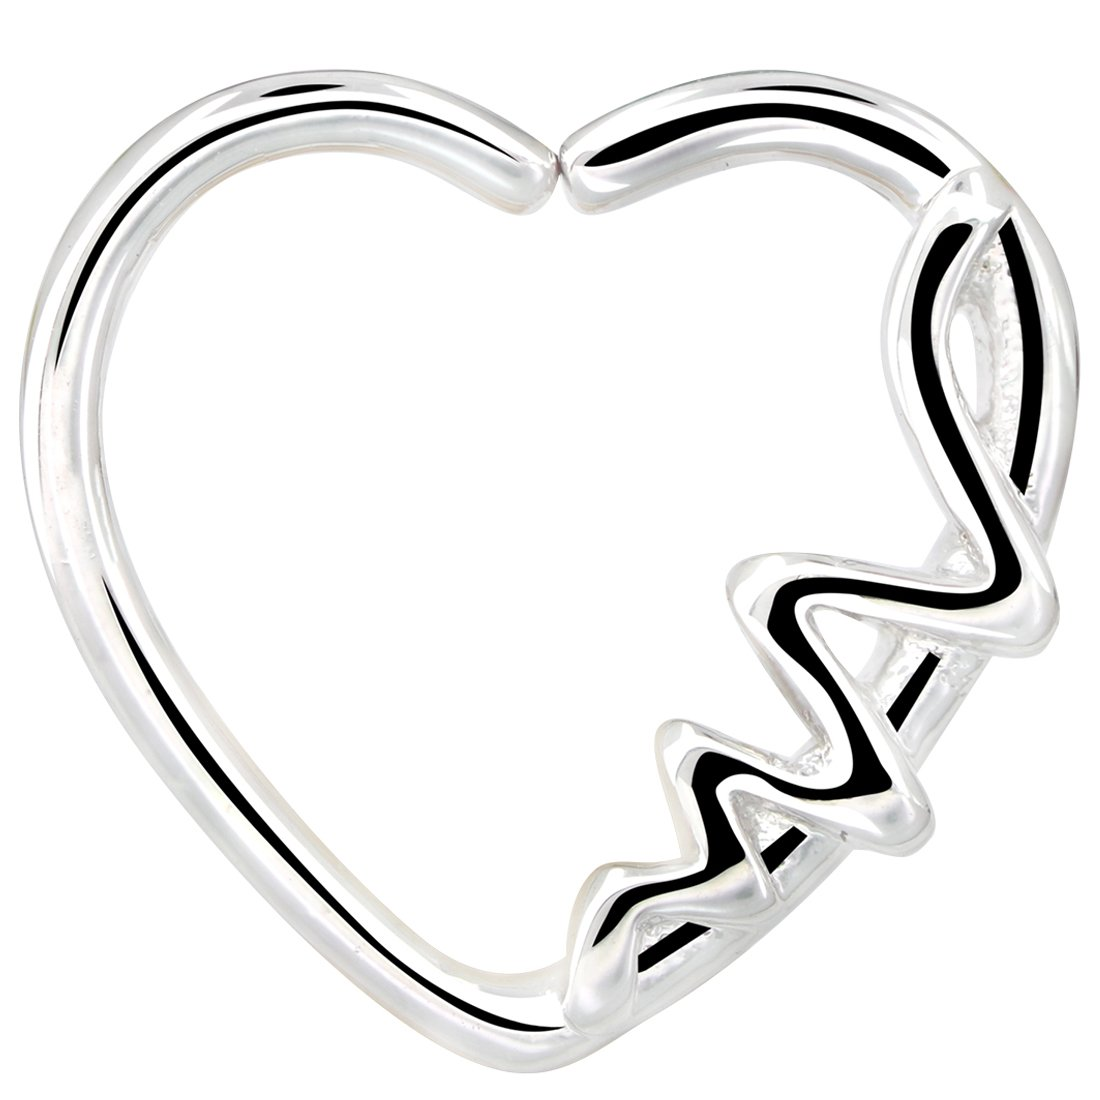 OUFER Body Piercing Jewellery Heart Shaped Waves Left Closure Daith Cartilag Tragus Helix Earring 16Gauge HCART006-1